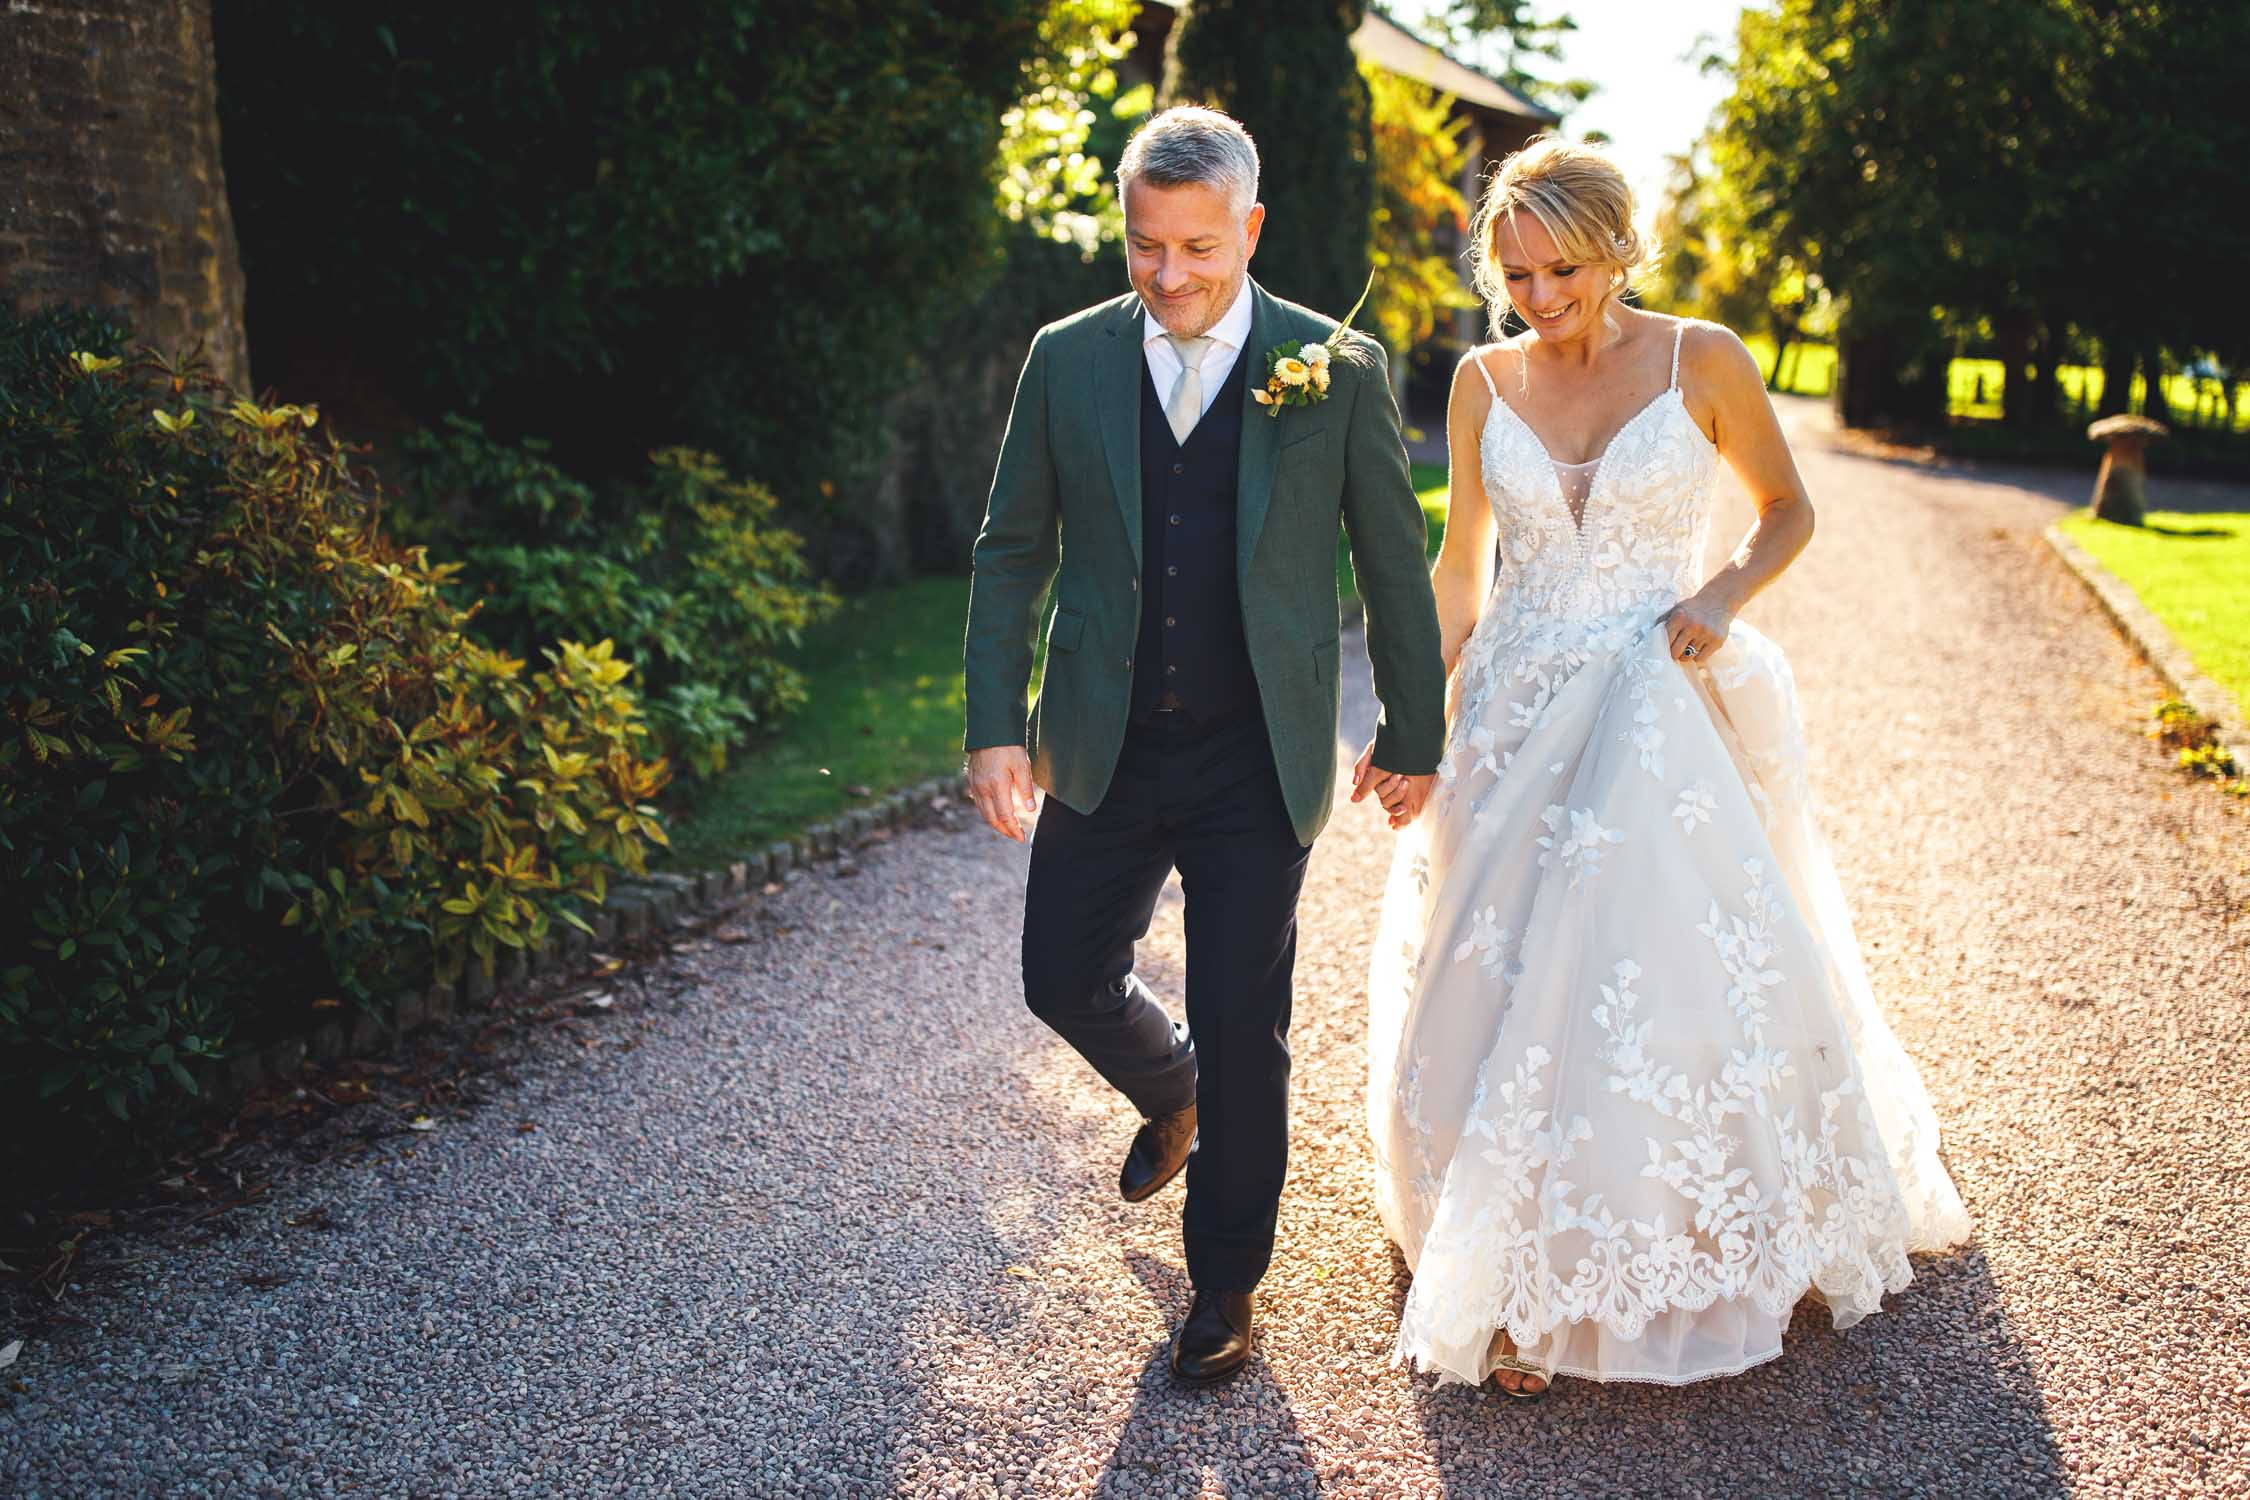 Dewsall Court Wedding, Bride and Groom Portraits, Herefordshire, UK